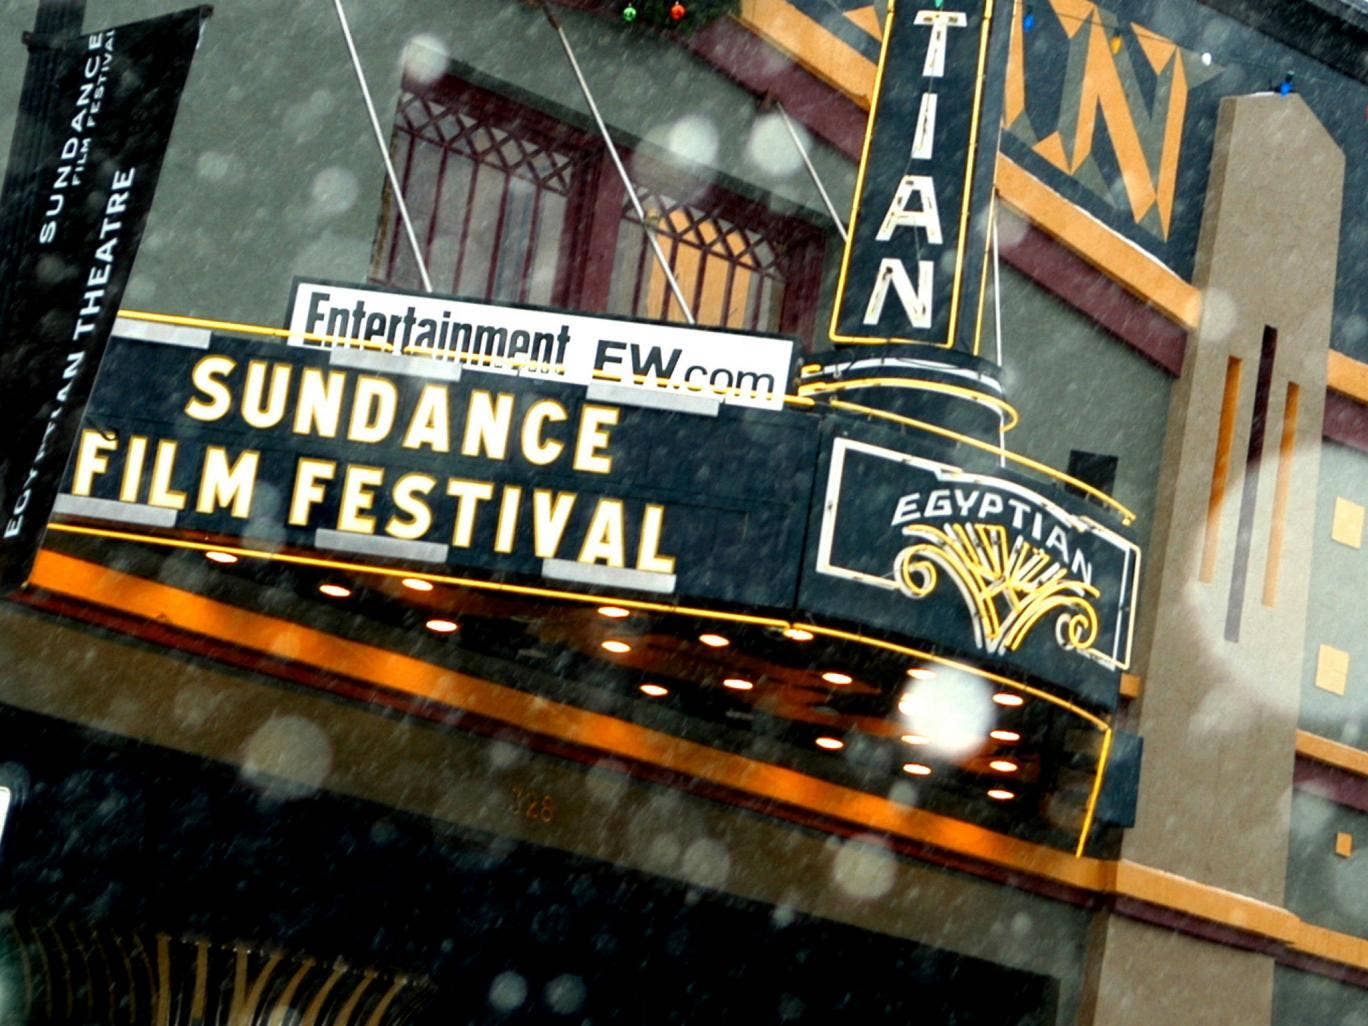 Sundance film festival 2016 8 films tipped to follow in the footsteps